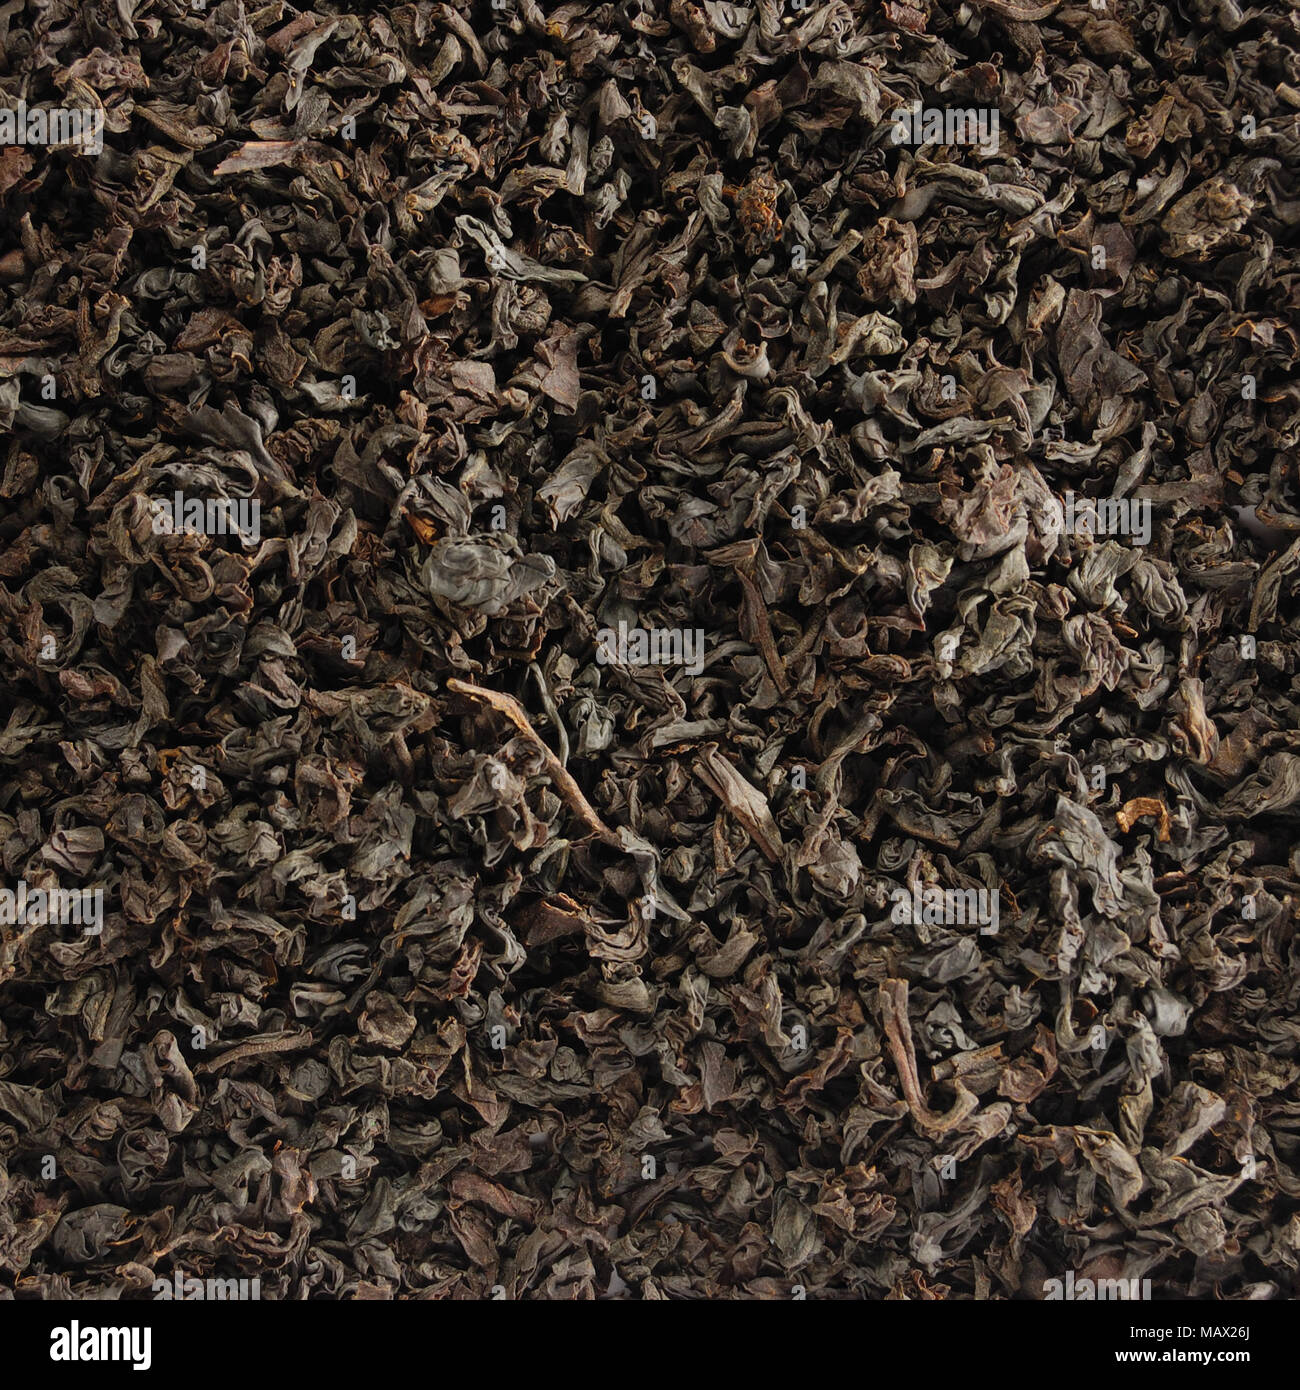 Dark Loose Leaf Tea Background Black Golden Leaves Blend Texture Pattern Closeup Detail Large Detailed Textured Macro Wallpaper